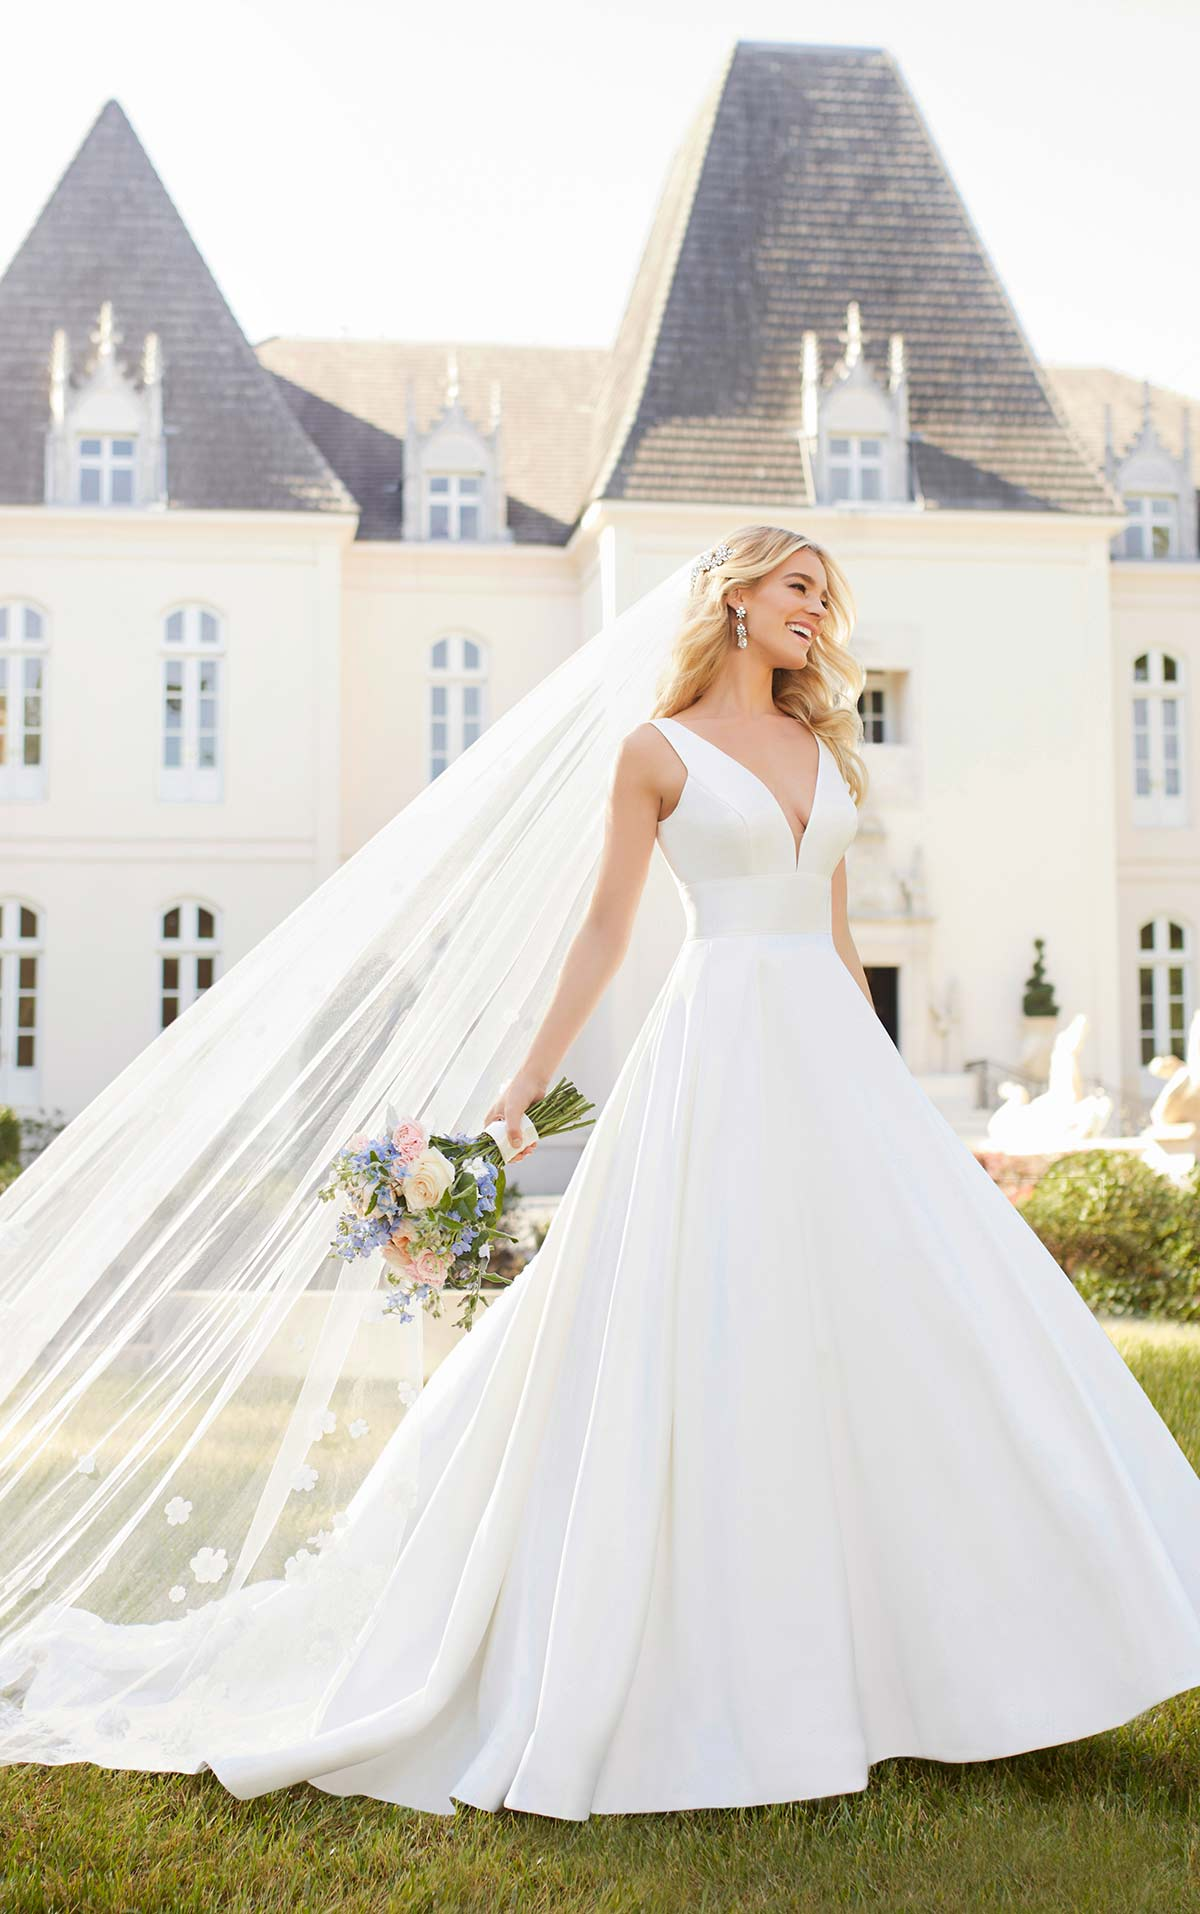 Affordable Wedding Dress Designer Stella York Reveals New Spring